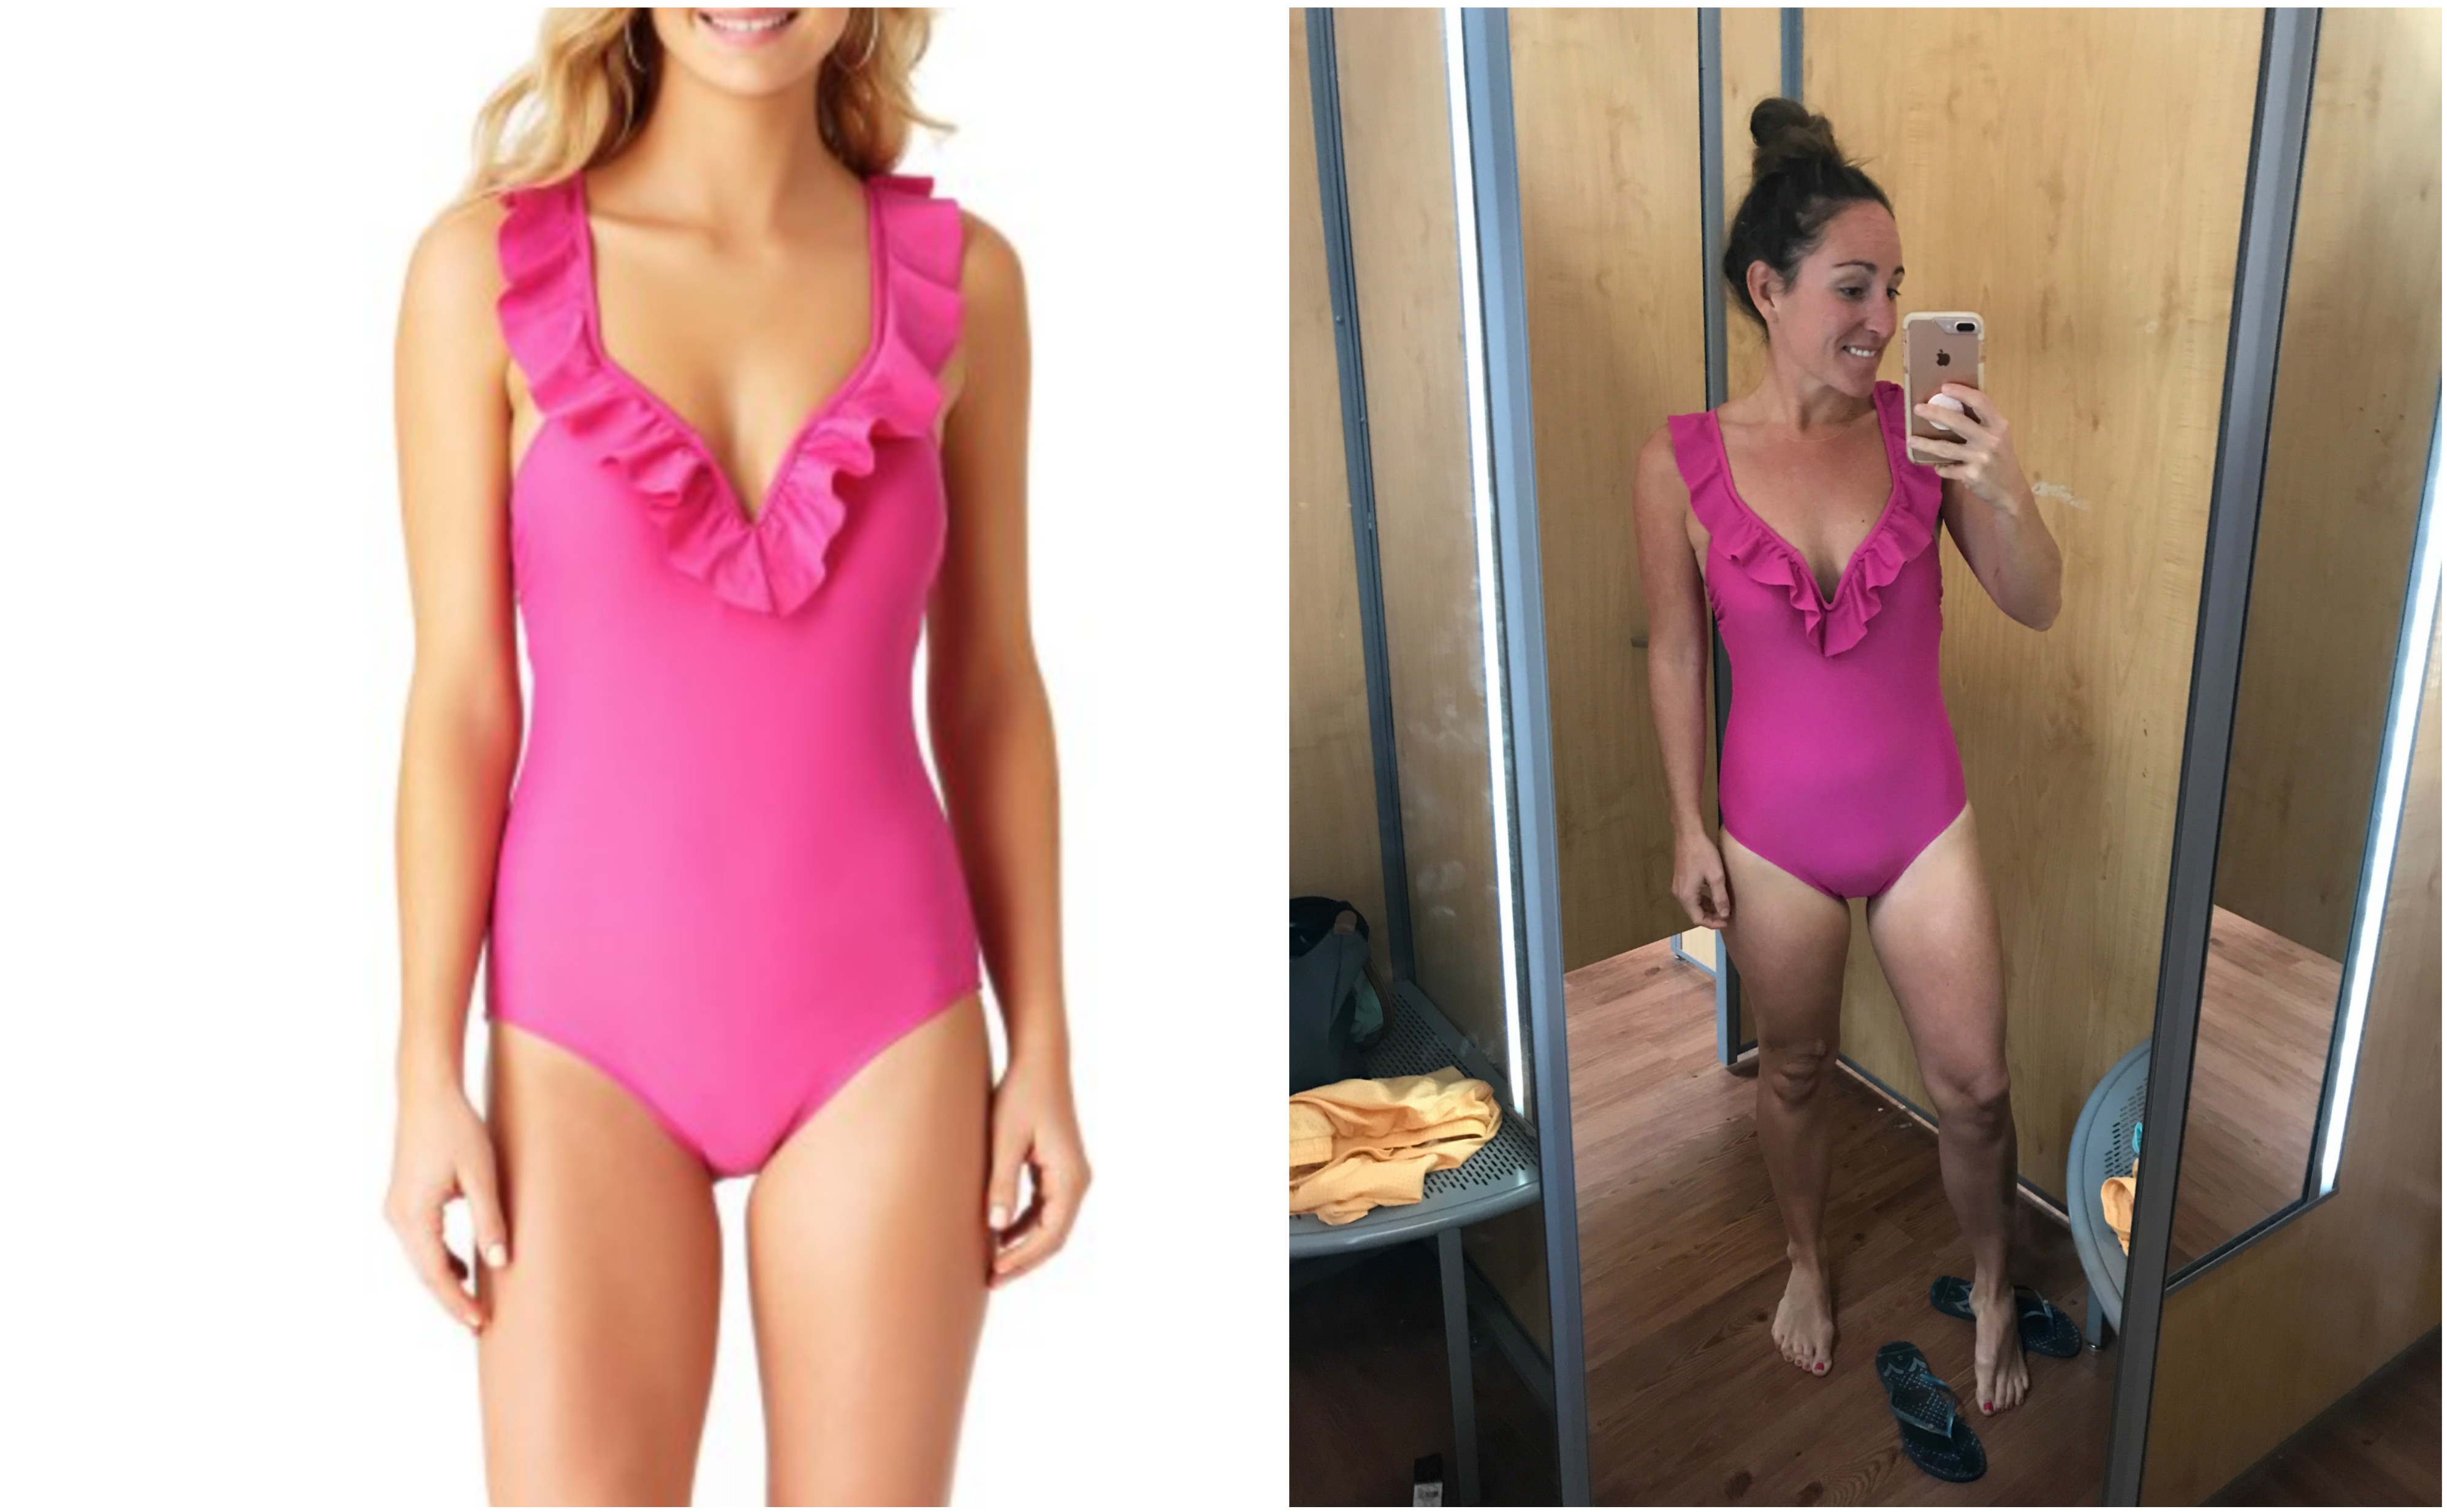 Walmart Pink Swimsuit - 5 on Friday - Communikait by Kait Hanson